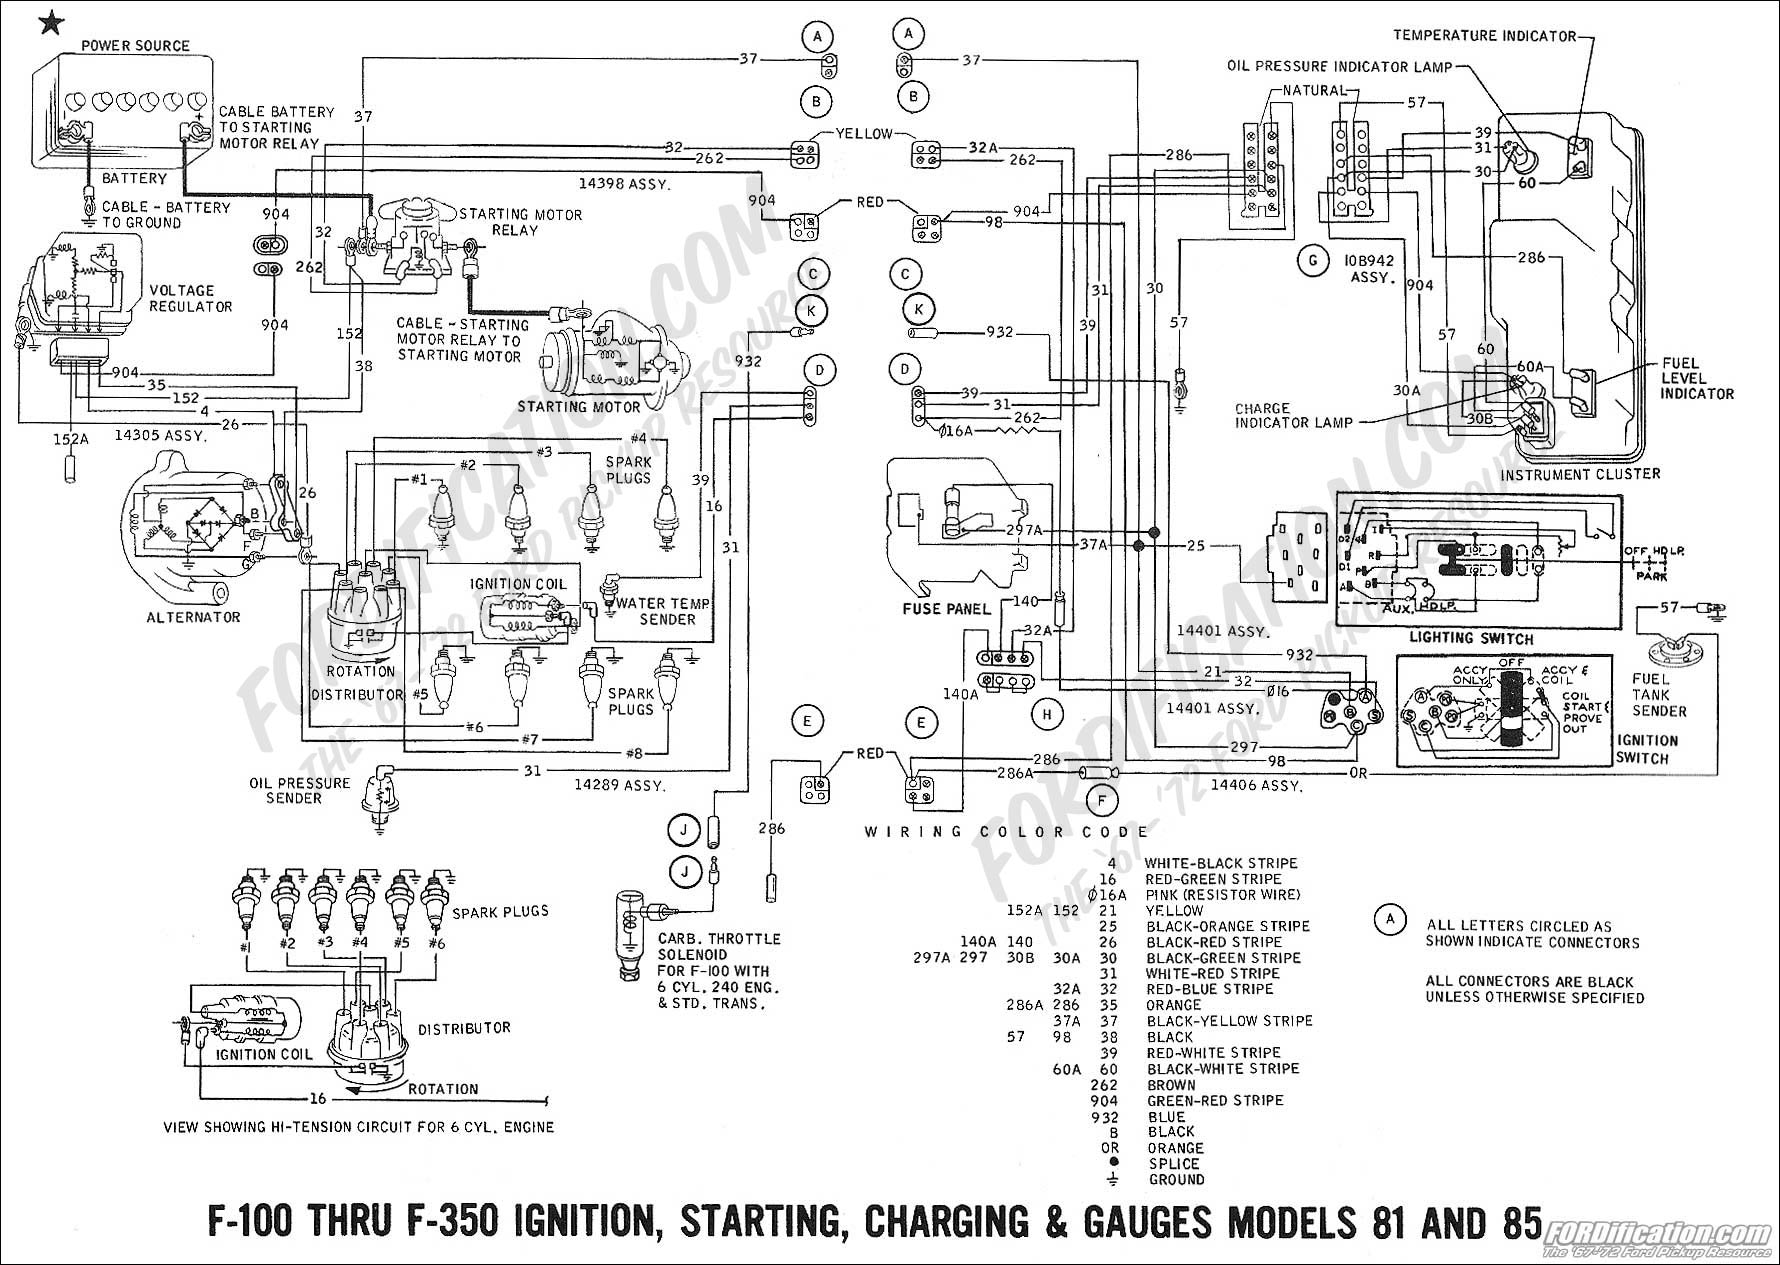 2000 Ford F 250 Fuse Box Diagram Trusted Wiring 1977 1968 Diy Enthusiasts Diagrams U2022 F250 73l